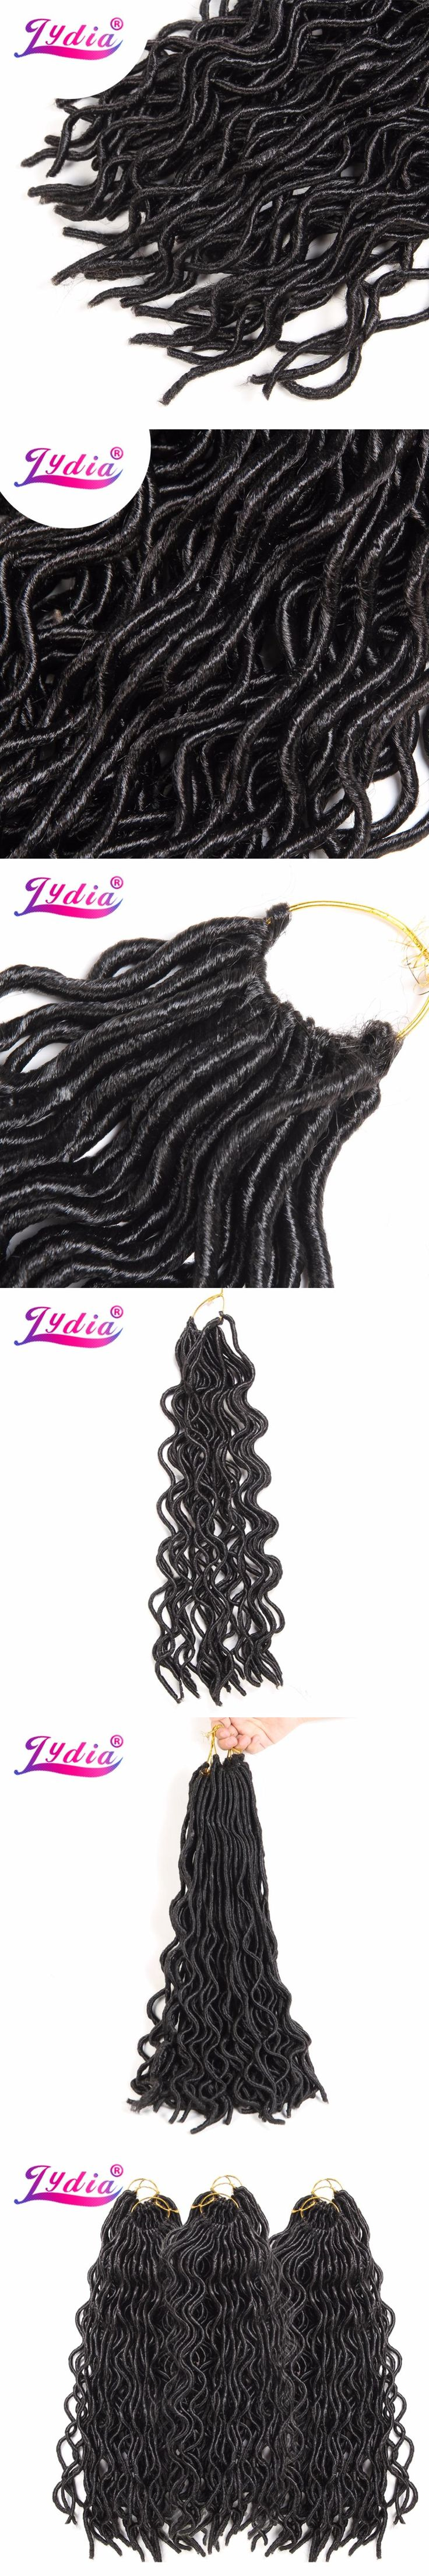 Lydia 20 Inch Faux Locs Crochet Hair Bulk 24strands/pack Curly Braiding Hair  Pure Color Synthetic Hair Extensions